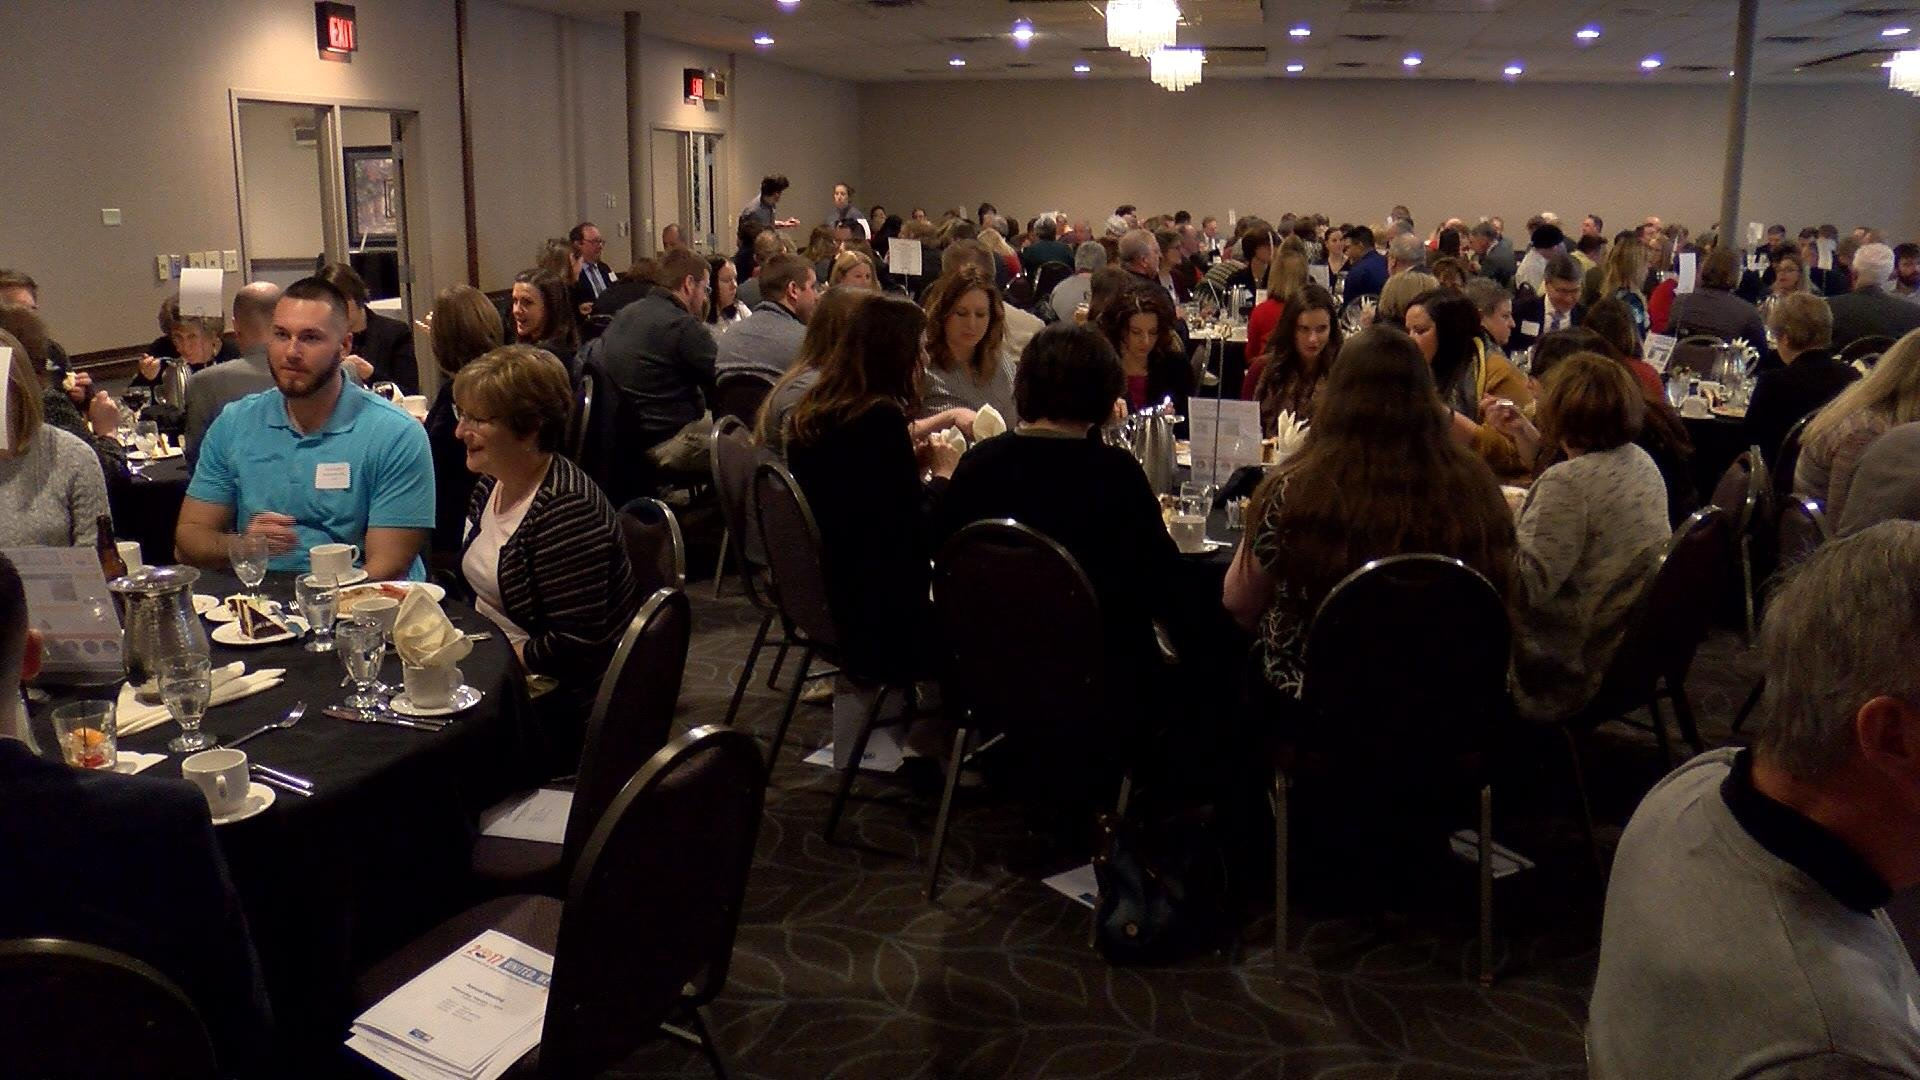 Crowd eats while waiting for annual meeting to begin.